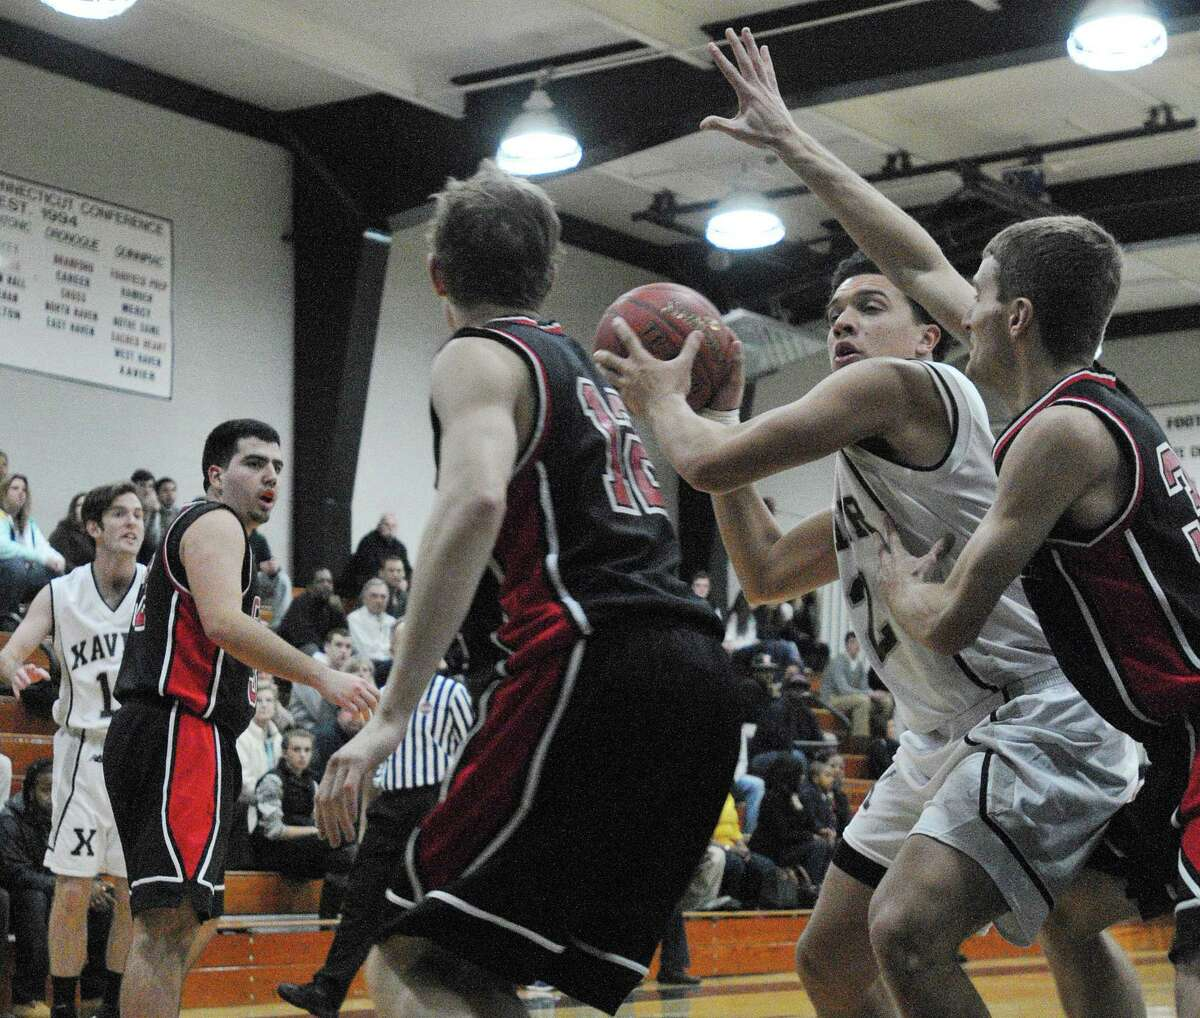 Xavier's Kaleb Lutton looks to make a pass during a game against Cheshire last season.